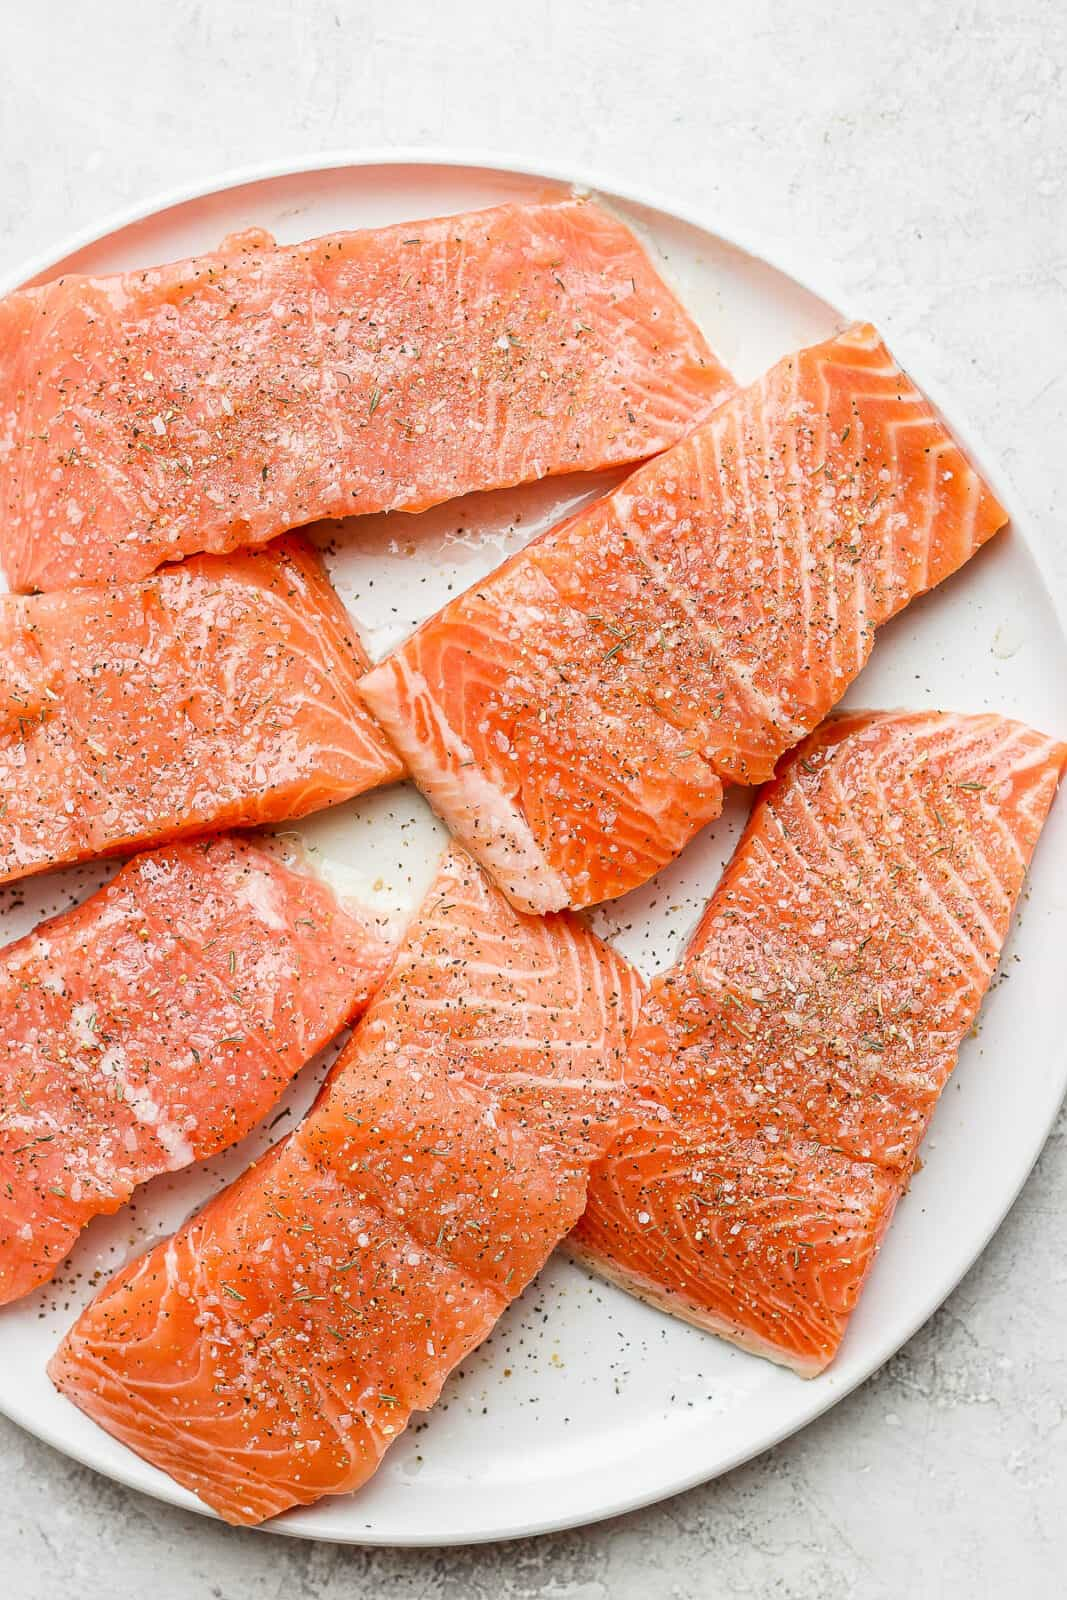 Salmon fillets with salmon seasoning on top.